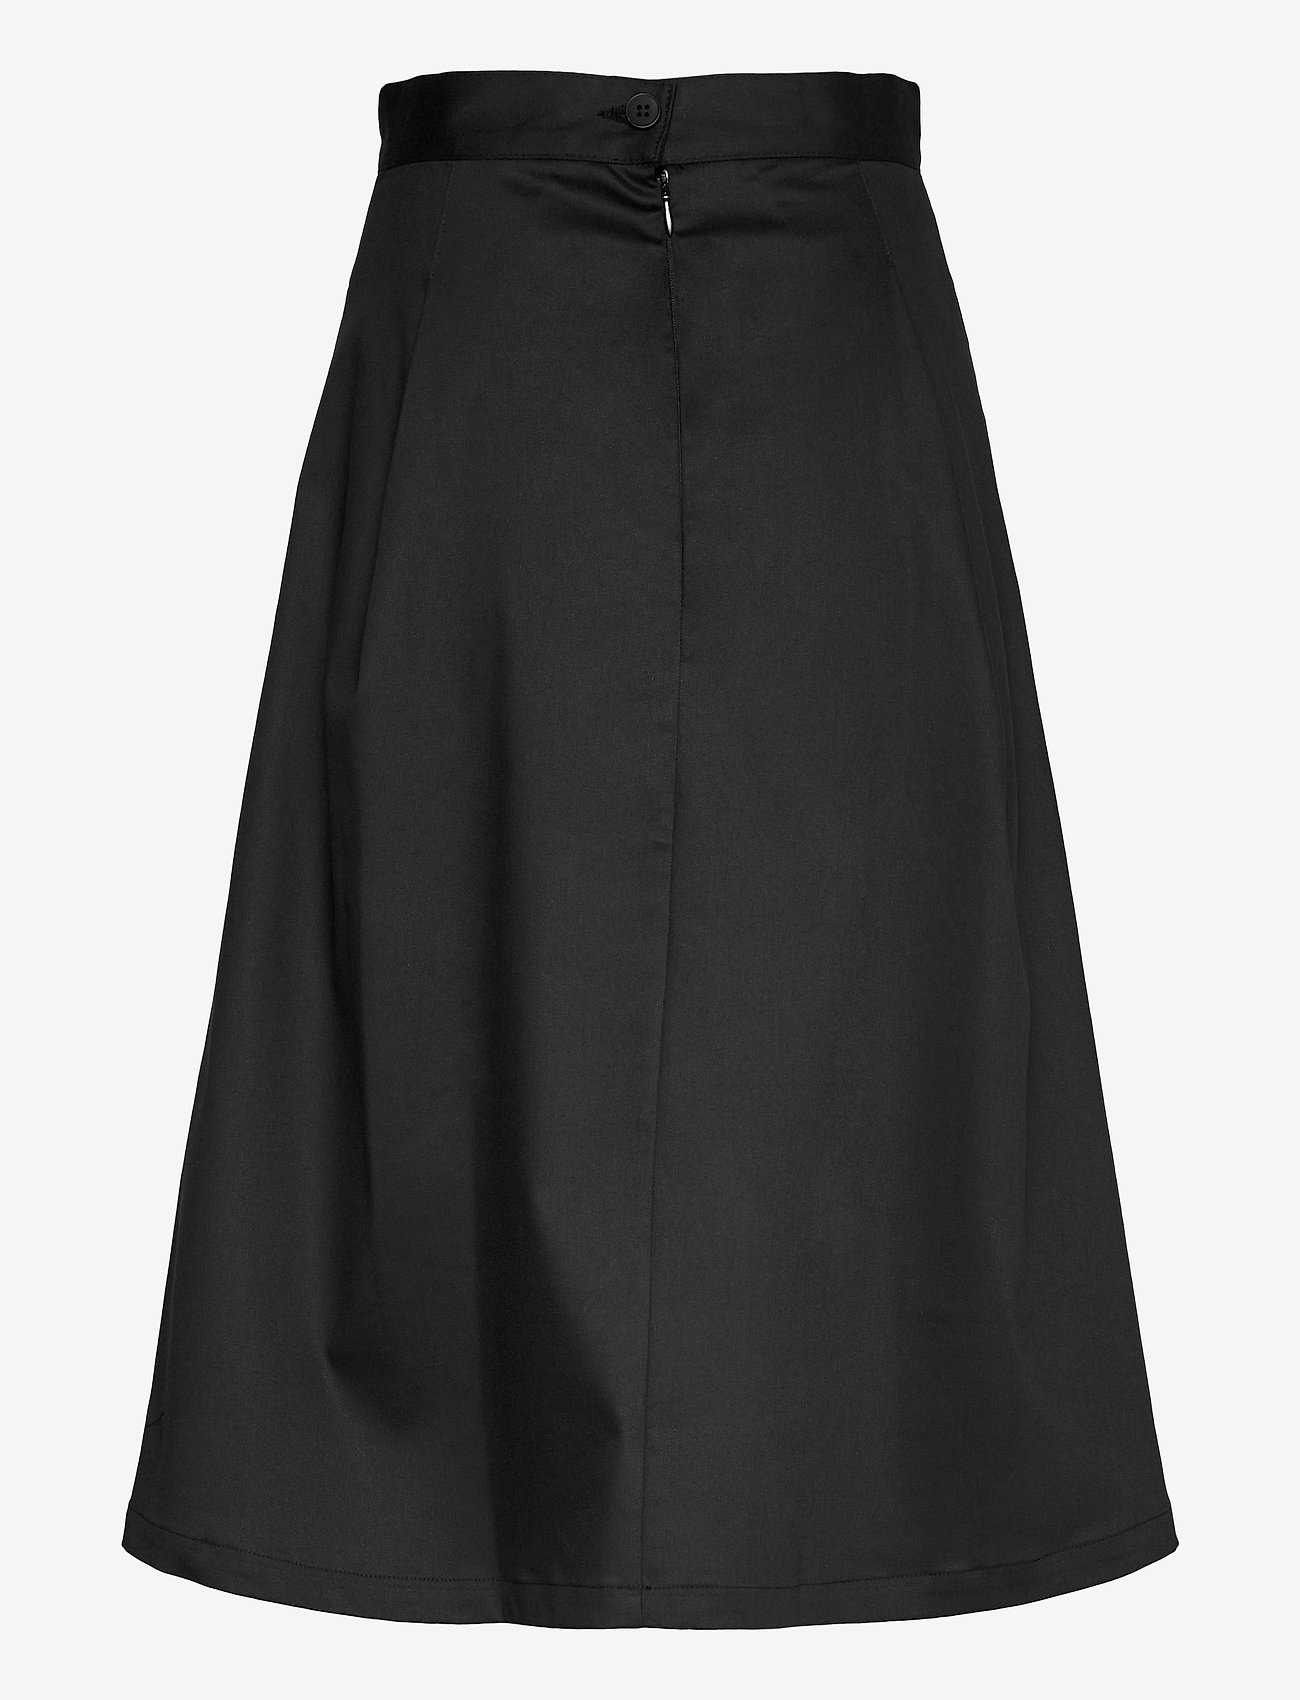 Gaia Skirt (Black) - Makia f1ATCo